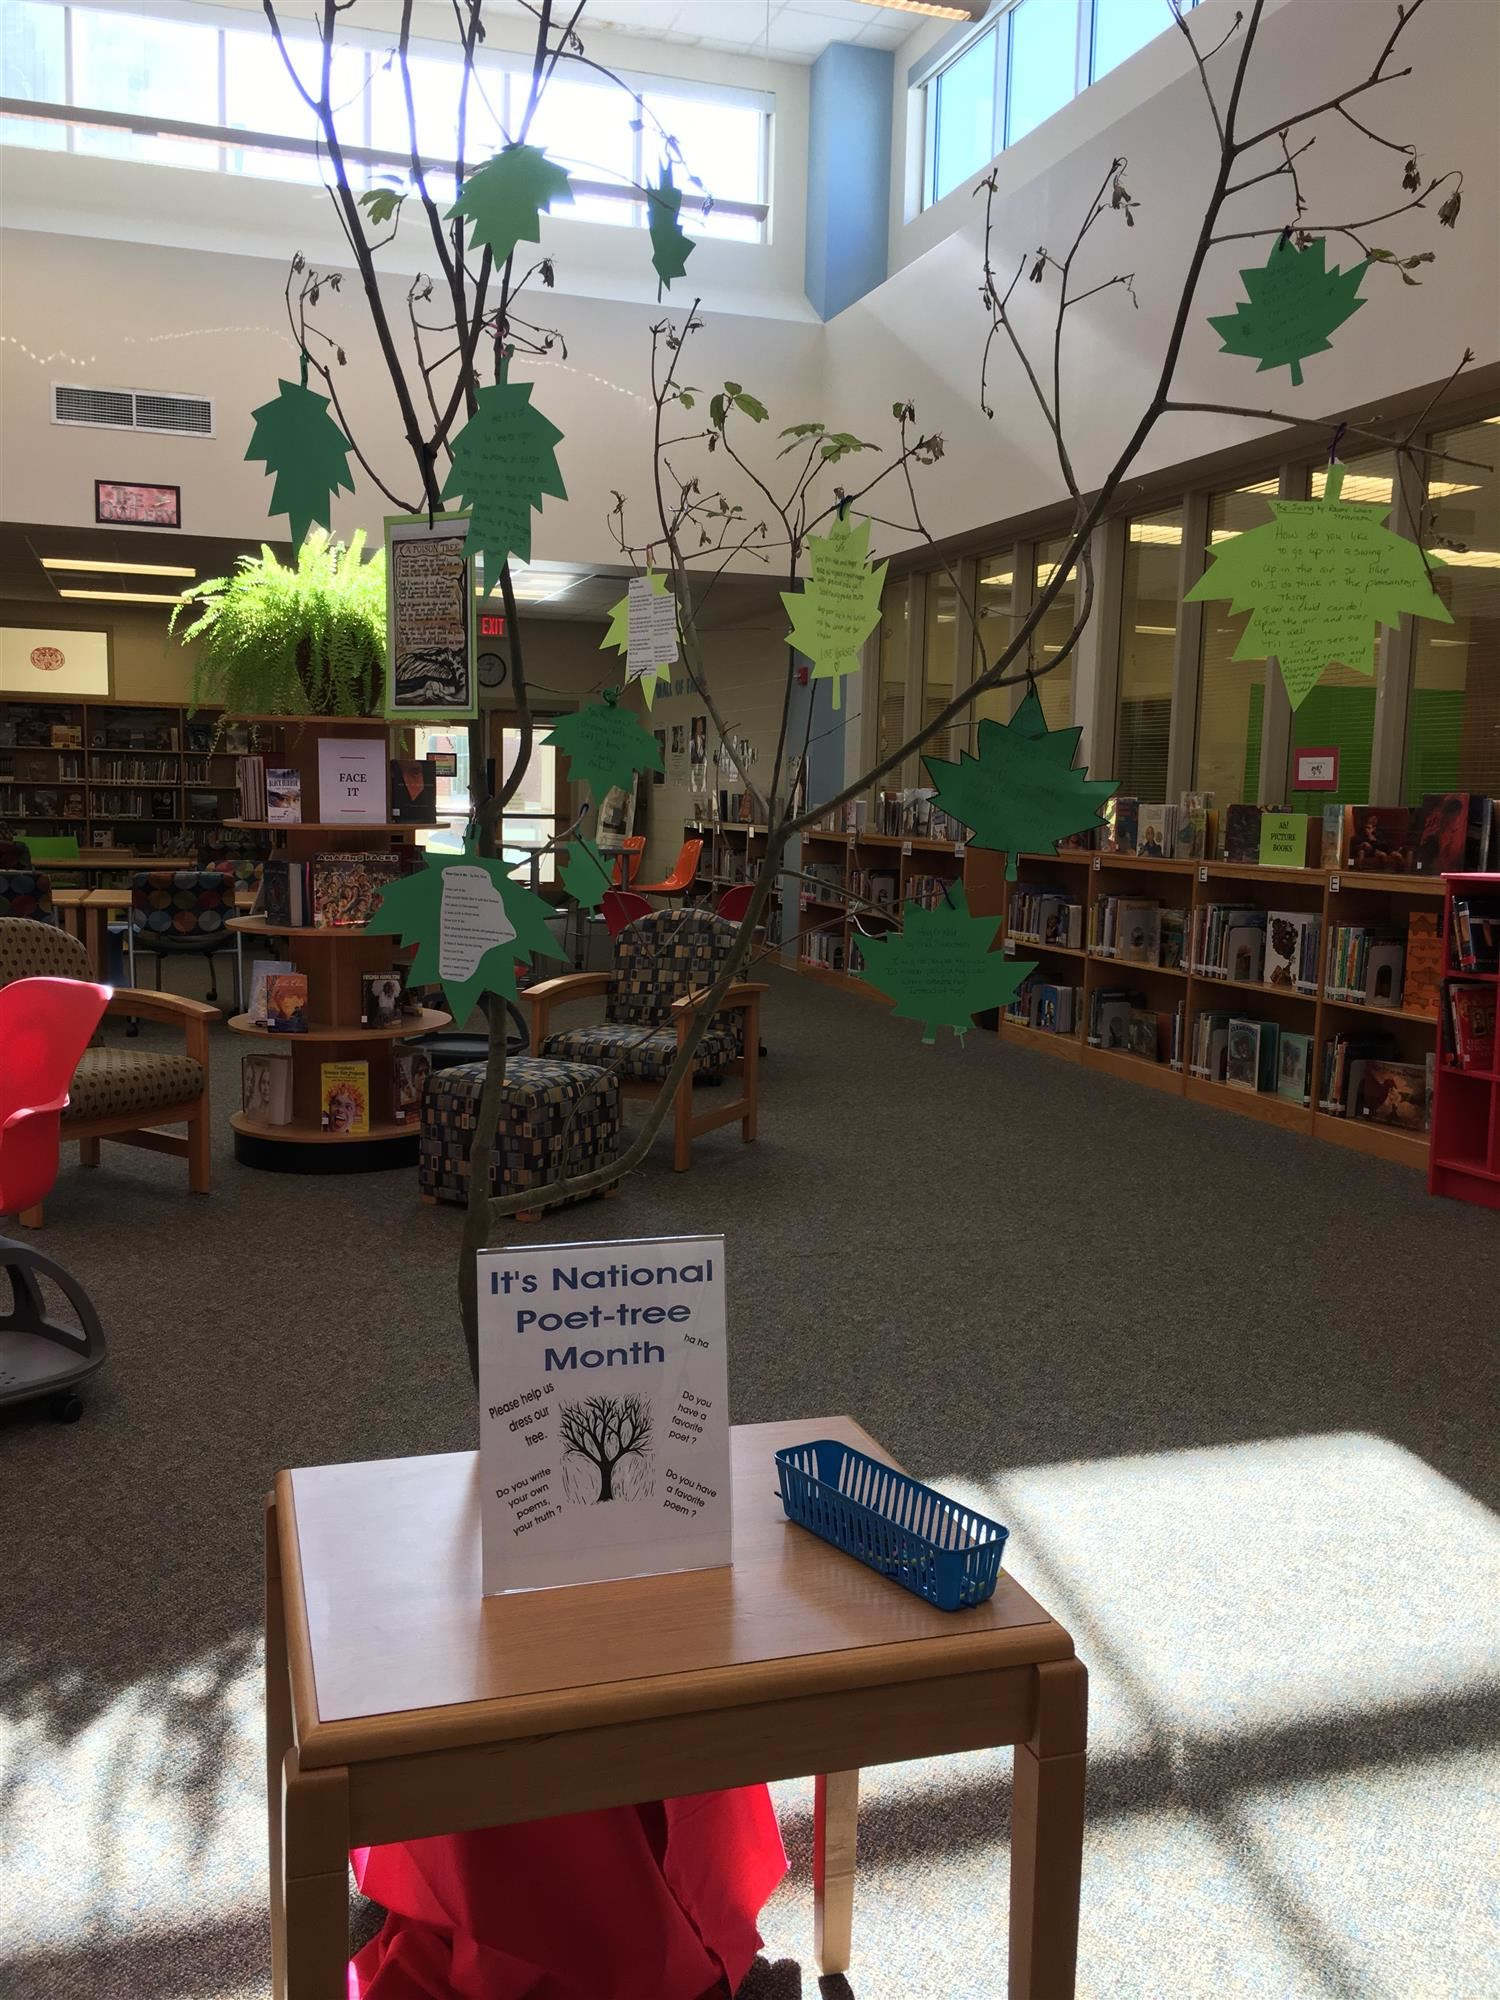 Add a Poem to the Poet-tree!